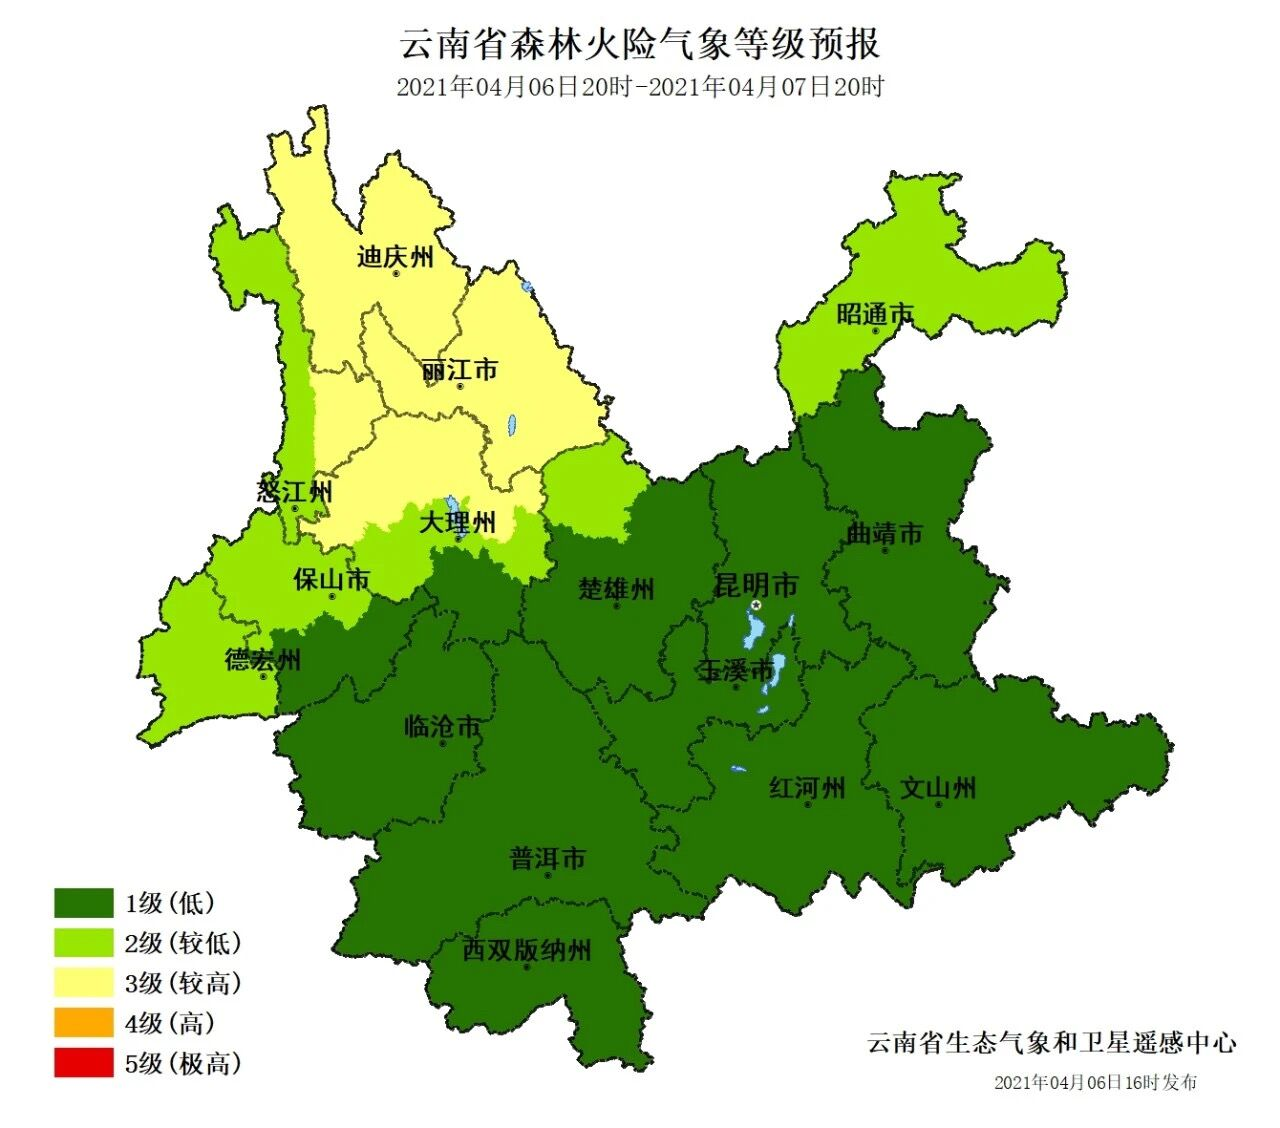 http://i.weather.com.cn/images/yunnan/tqyw/2021/04/07/1617757963546009223.jpg